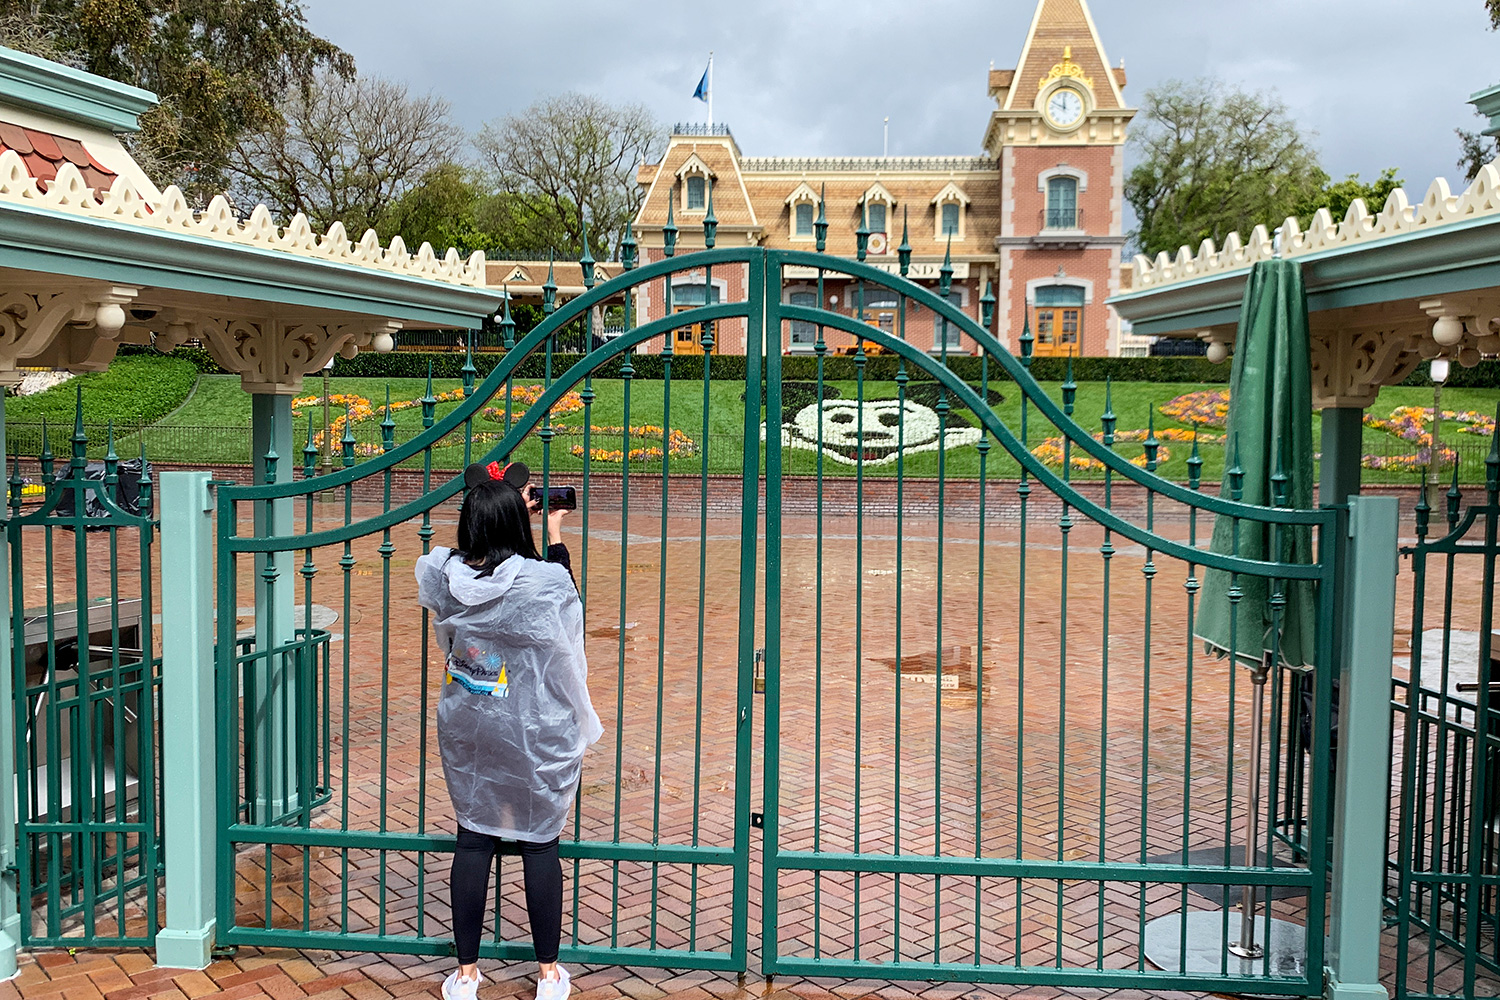 A visitor to the Disneyland Resort takes a picture through a locked gate at the entrance to Disneyland in Anaheim, CA, on Monday, Mar 16, 2020